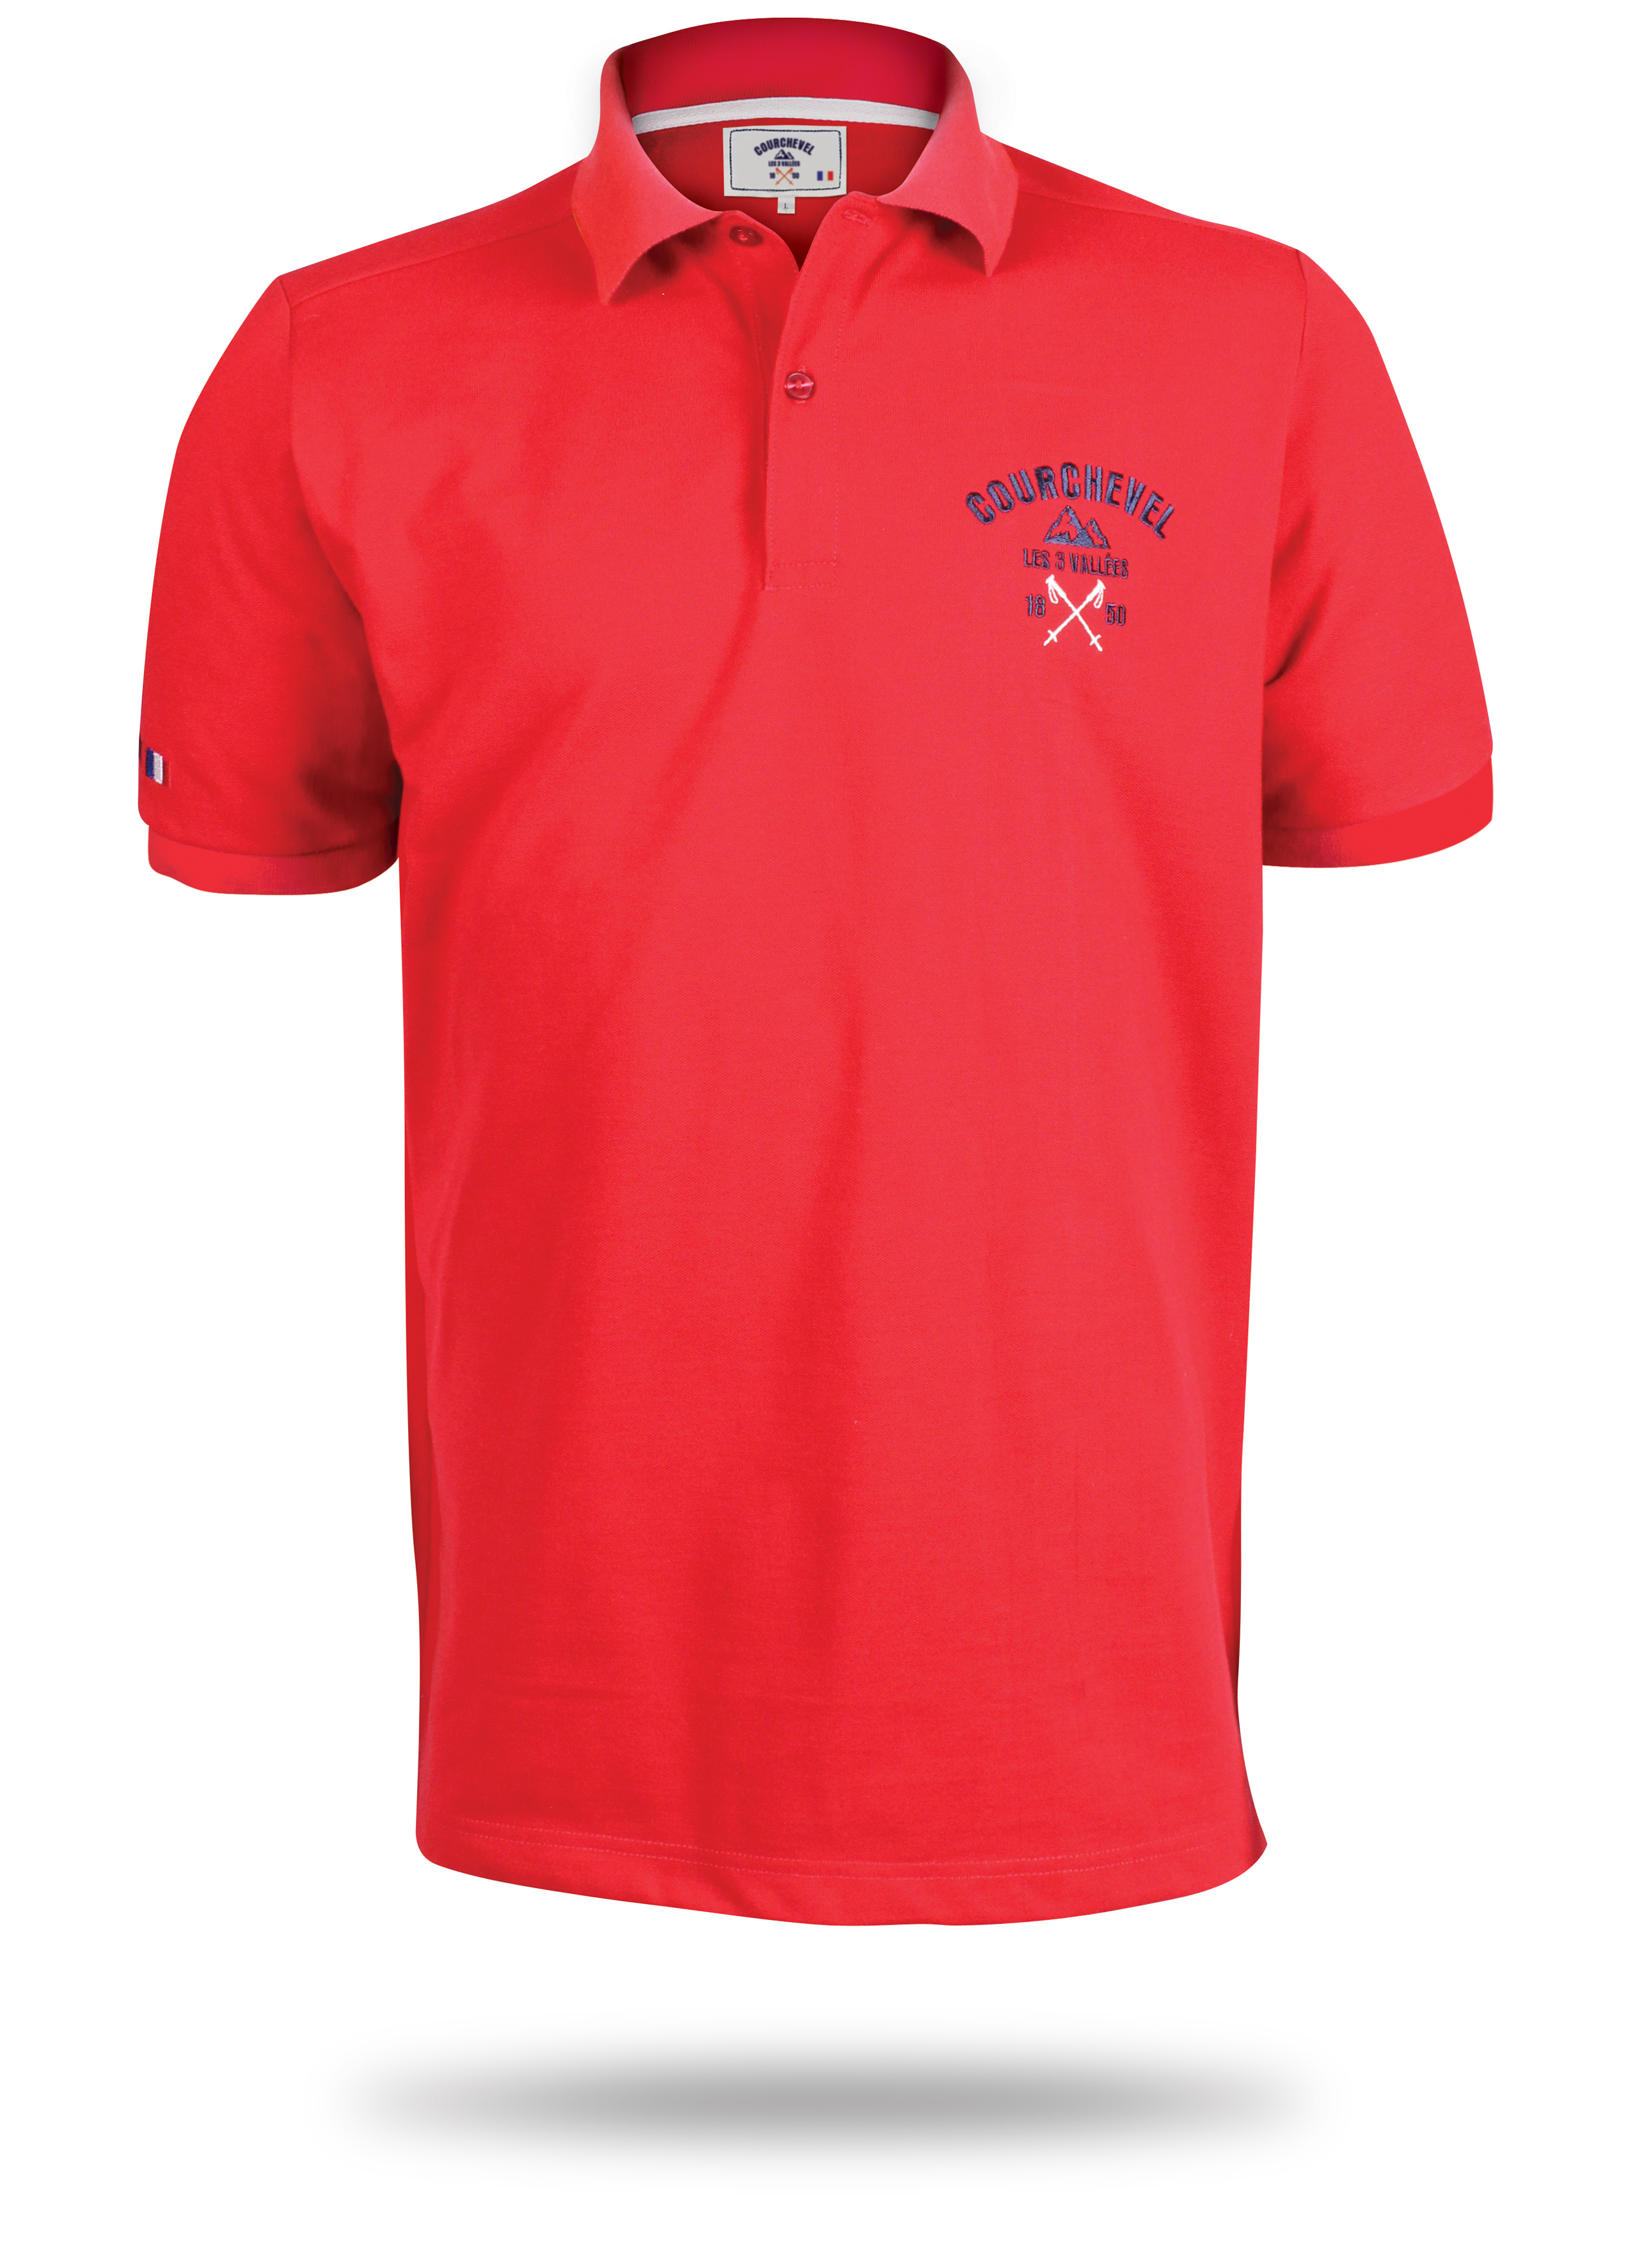 Red Polo with logo on it for the ski club of courchevel